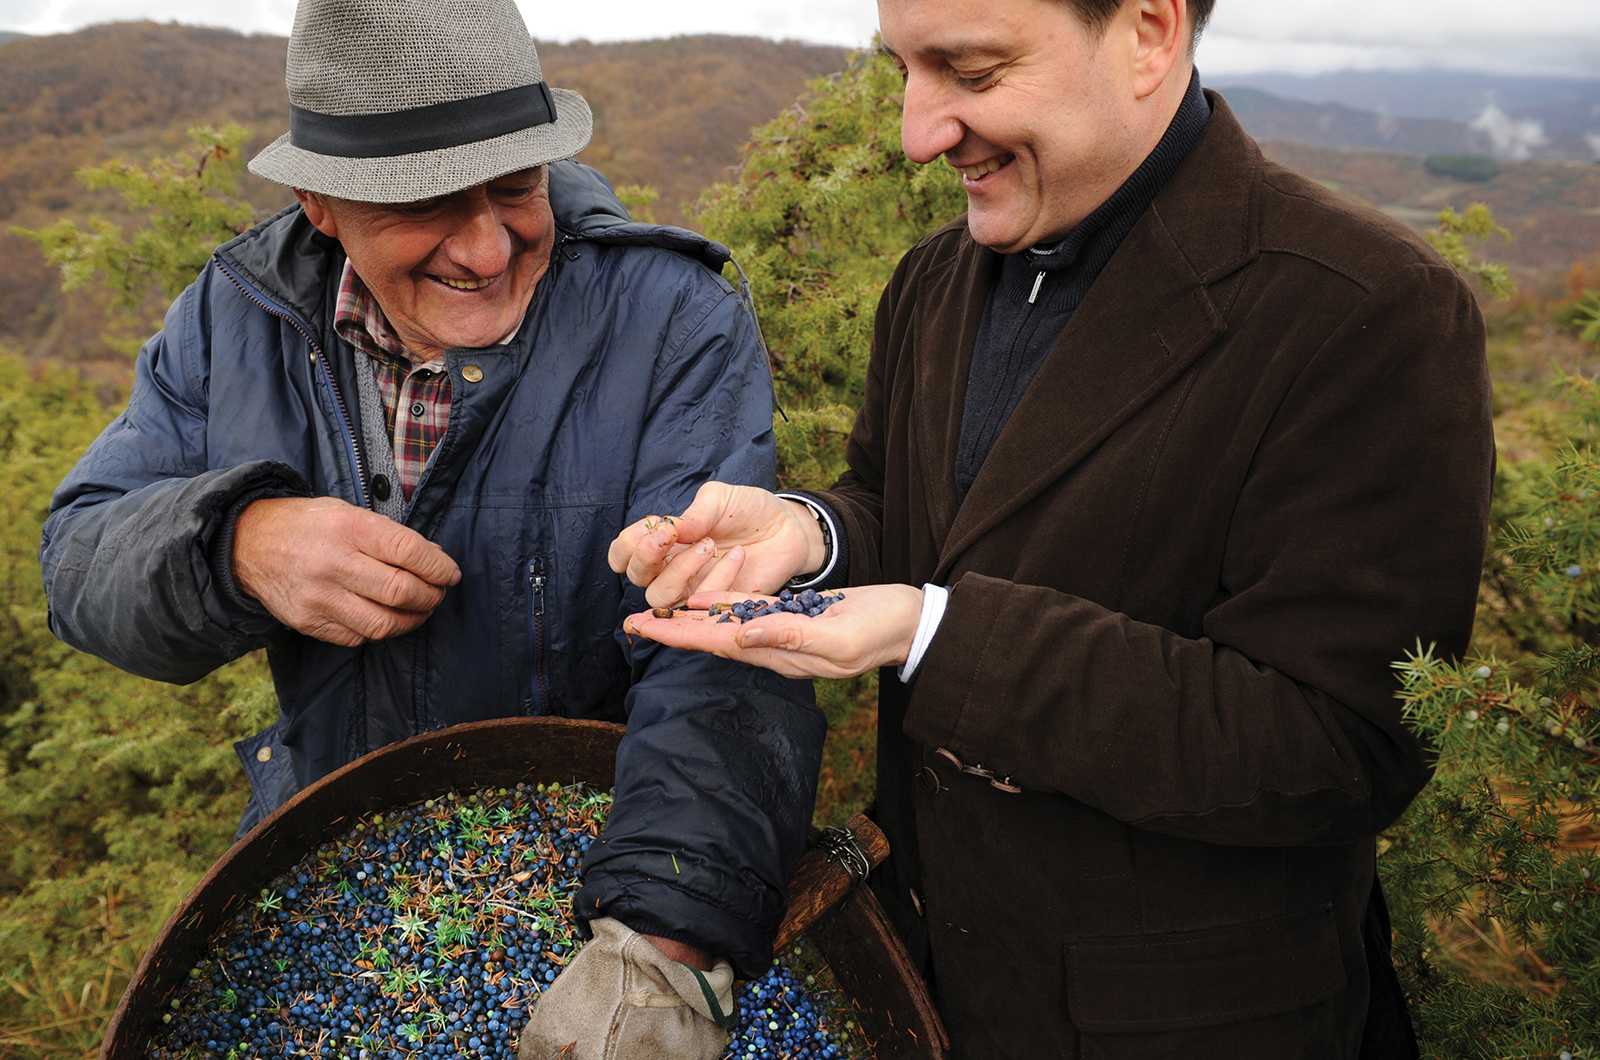 Ivano Tonutti master of botanicals at Bombay Sapphire with juniper farmer in Tuscany